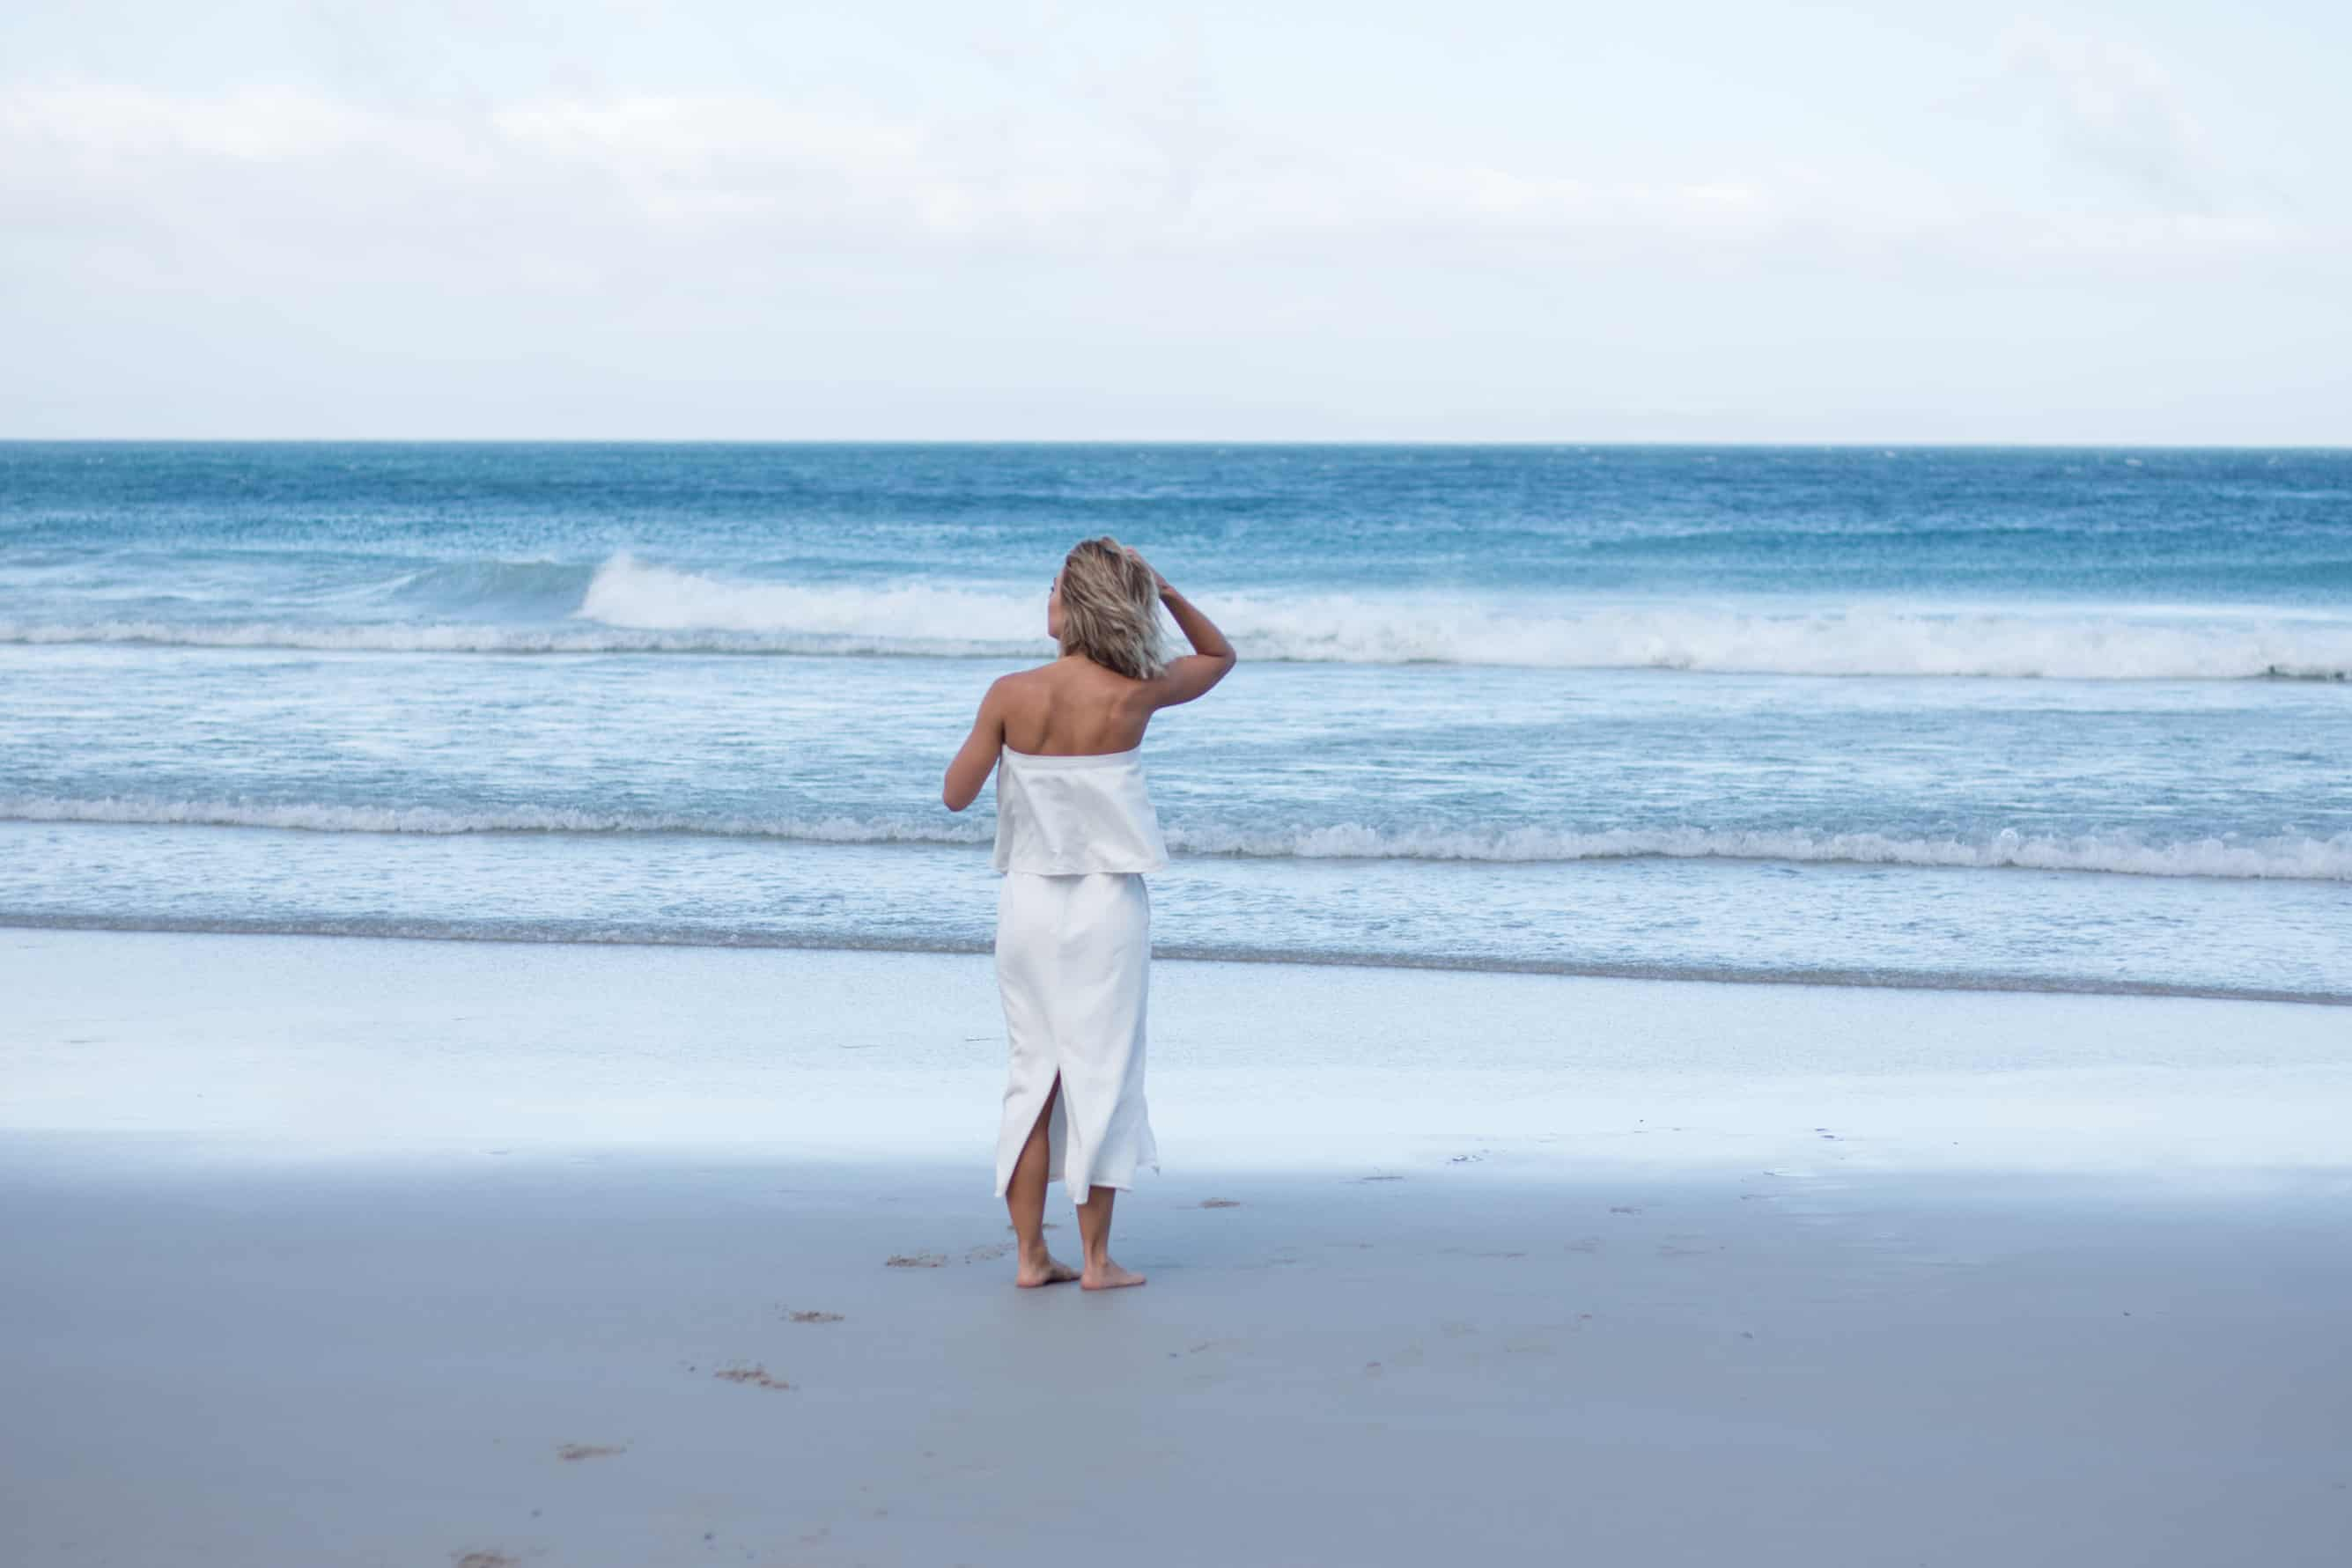 Model dressed in all white clothing looking out to the ocean going through her hair in a beautiful beach look with a white flowy bandeau top and a white skirt